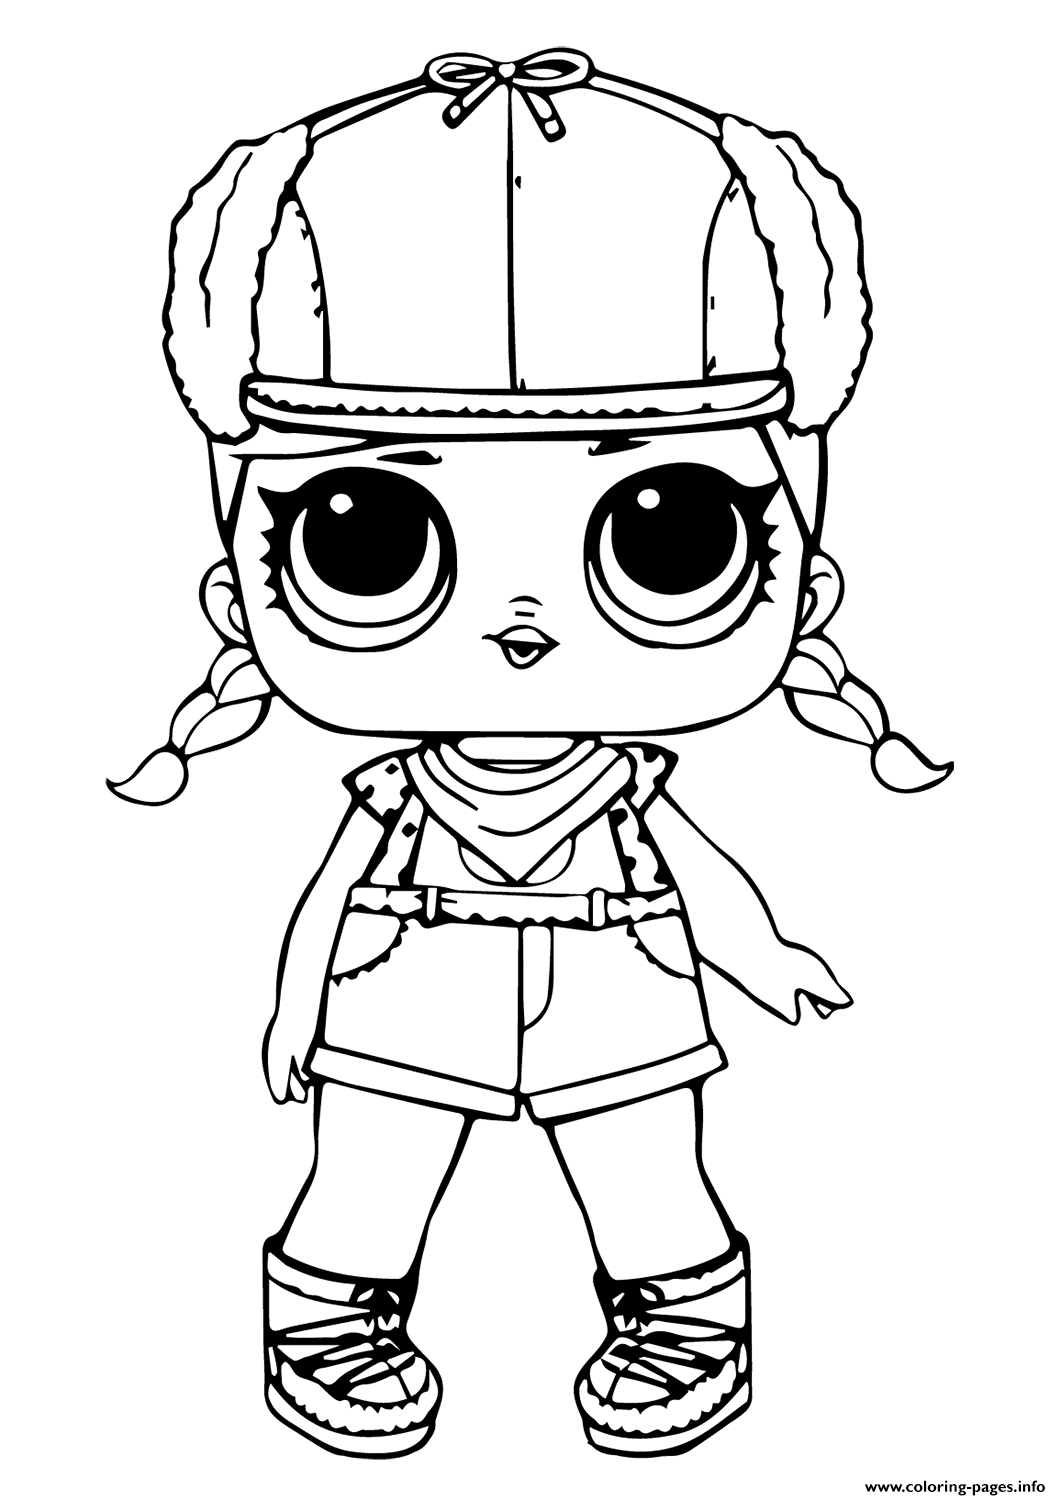 Lol Doll Brrr Bb Coloring Pages Printable